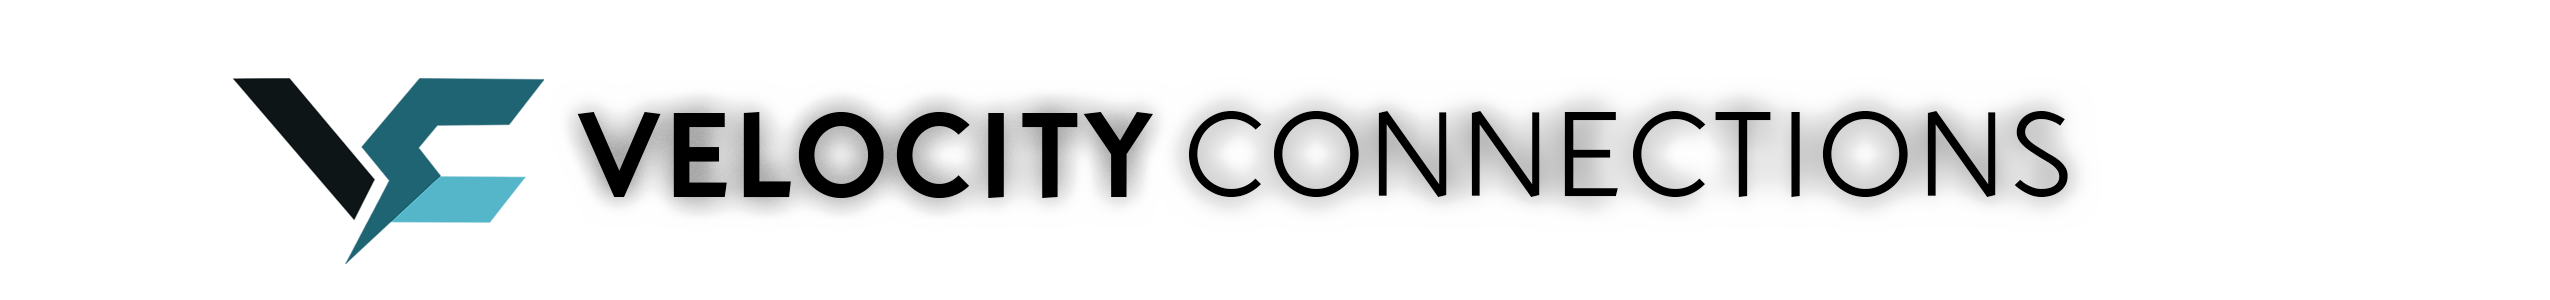 Velocity Connections Logo